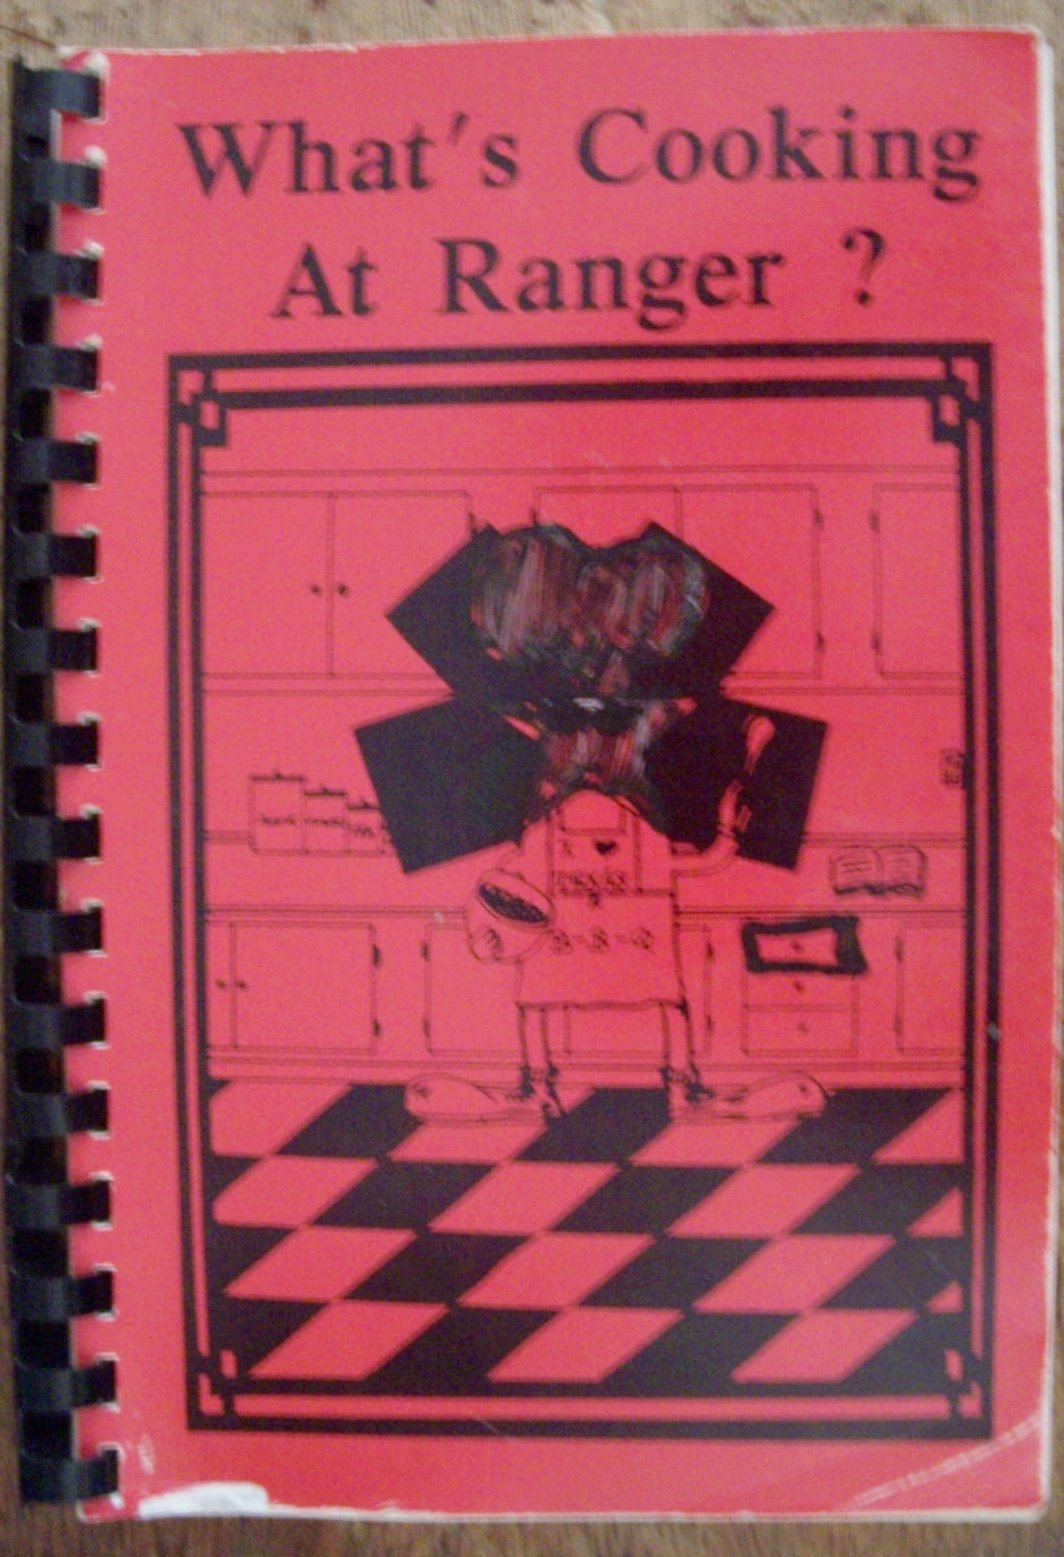 What's Cooking at Ranger? (Ranger Insurance Company